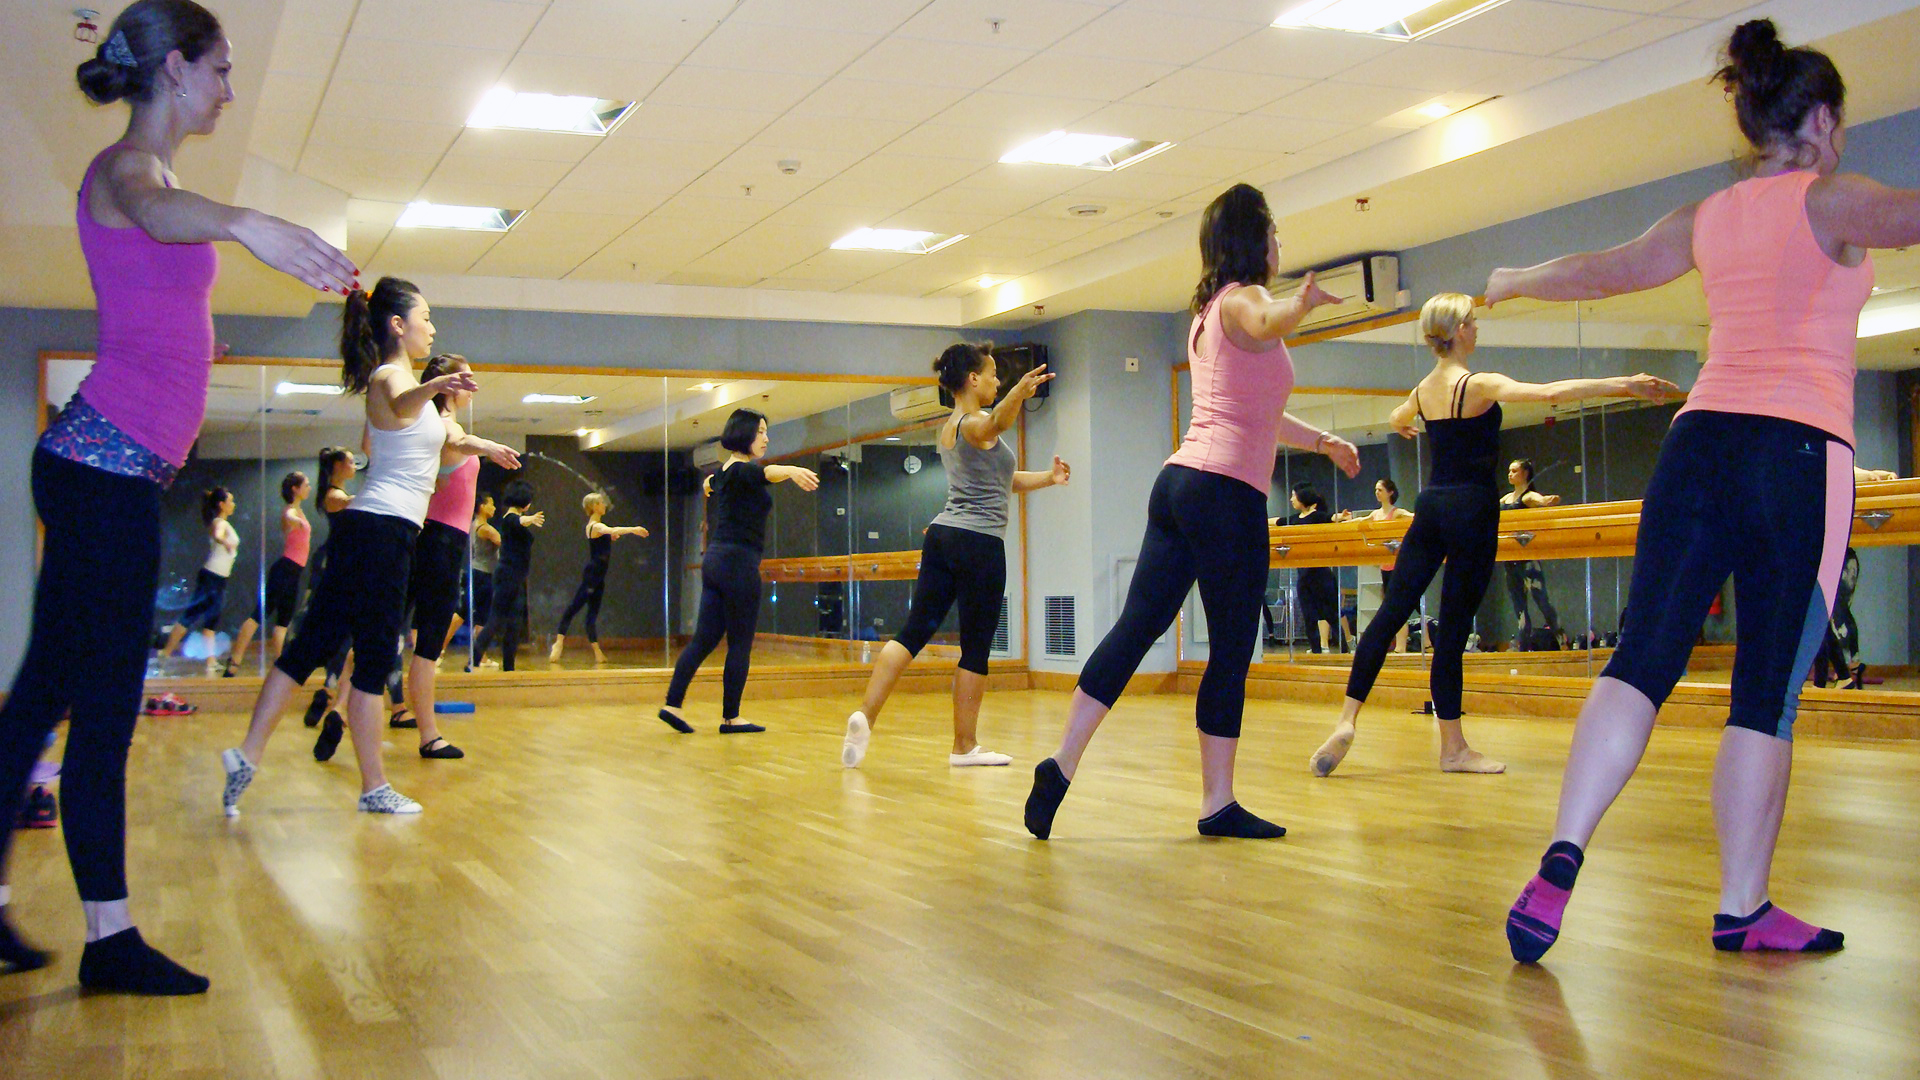 Copy of ballet body sculpture fitness classes